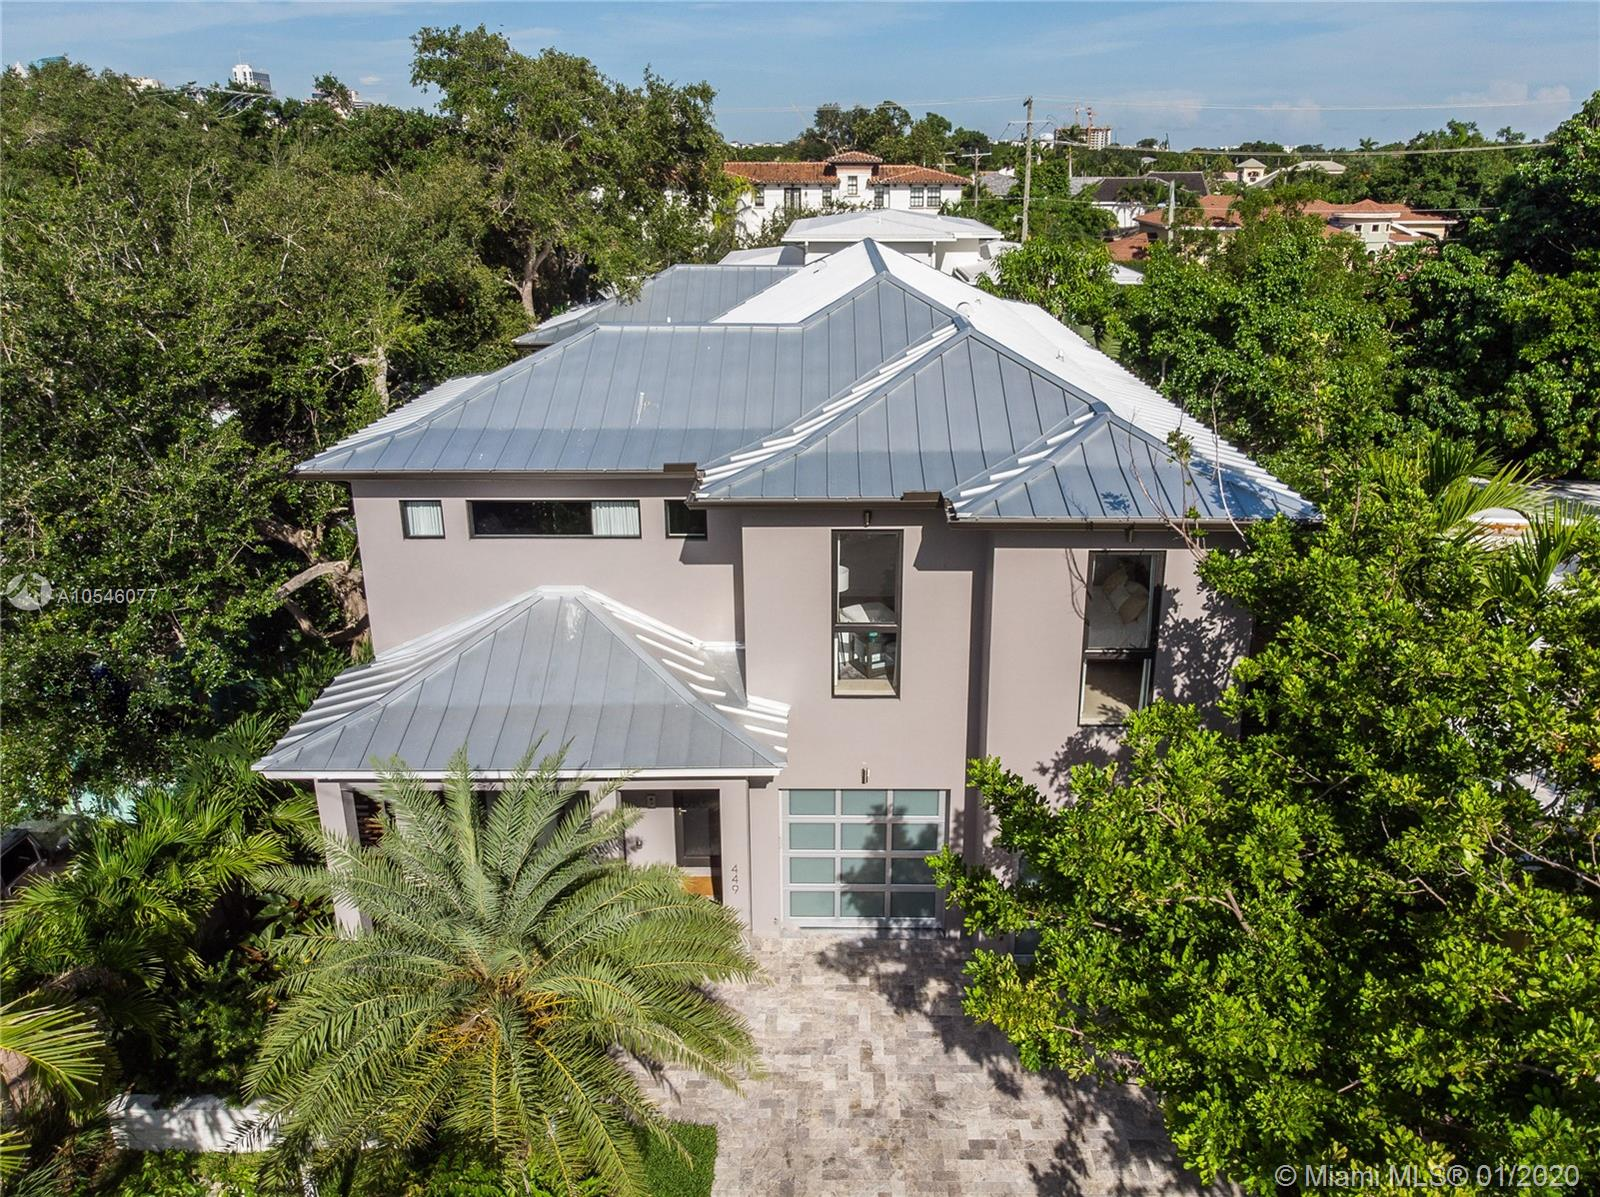 A beautiful modern new construction estate in the heart of Victoria Park in Fort Lauderdale. Fully automated smart home (lighting, audio, AC, alarm and security camera system). Grand living areas with open layout and large windows allowing for tones of natural light throughout the home! Spacious kitchen with Italian style cabinets, stainless steel appliances, quartz countertops and large island overlooking the family area and patio with pool. Amazing yard with covered patio, custom lighting great for weekend relaxation in the pool or entertaining guests. The large master suite features  2 walk-in closets and separate tub and shower. The finest finishes throughout.